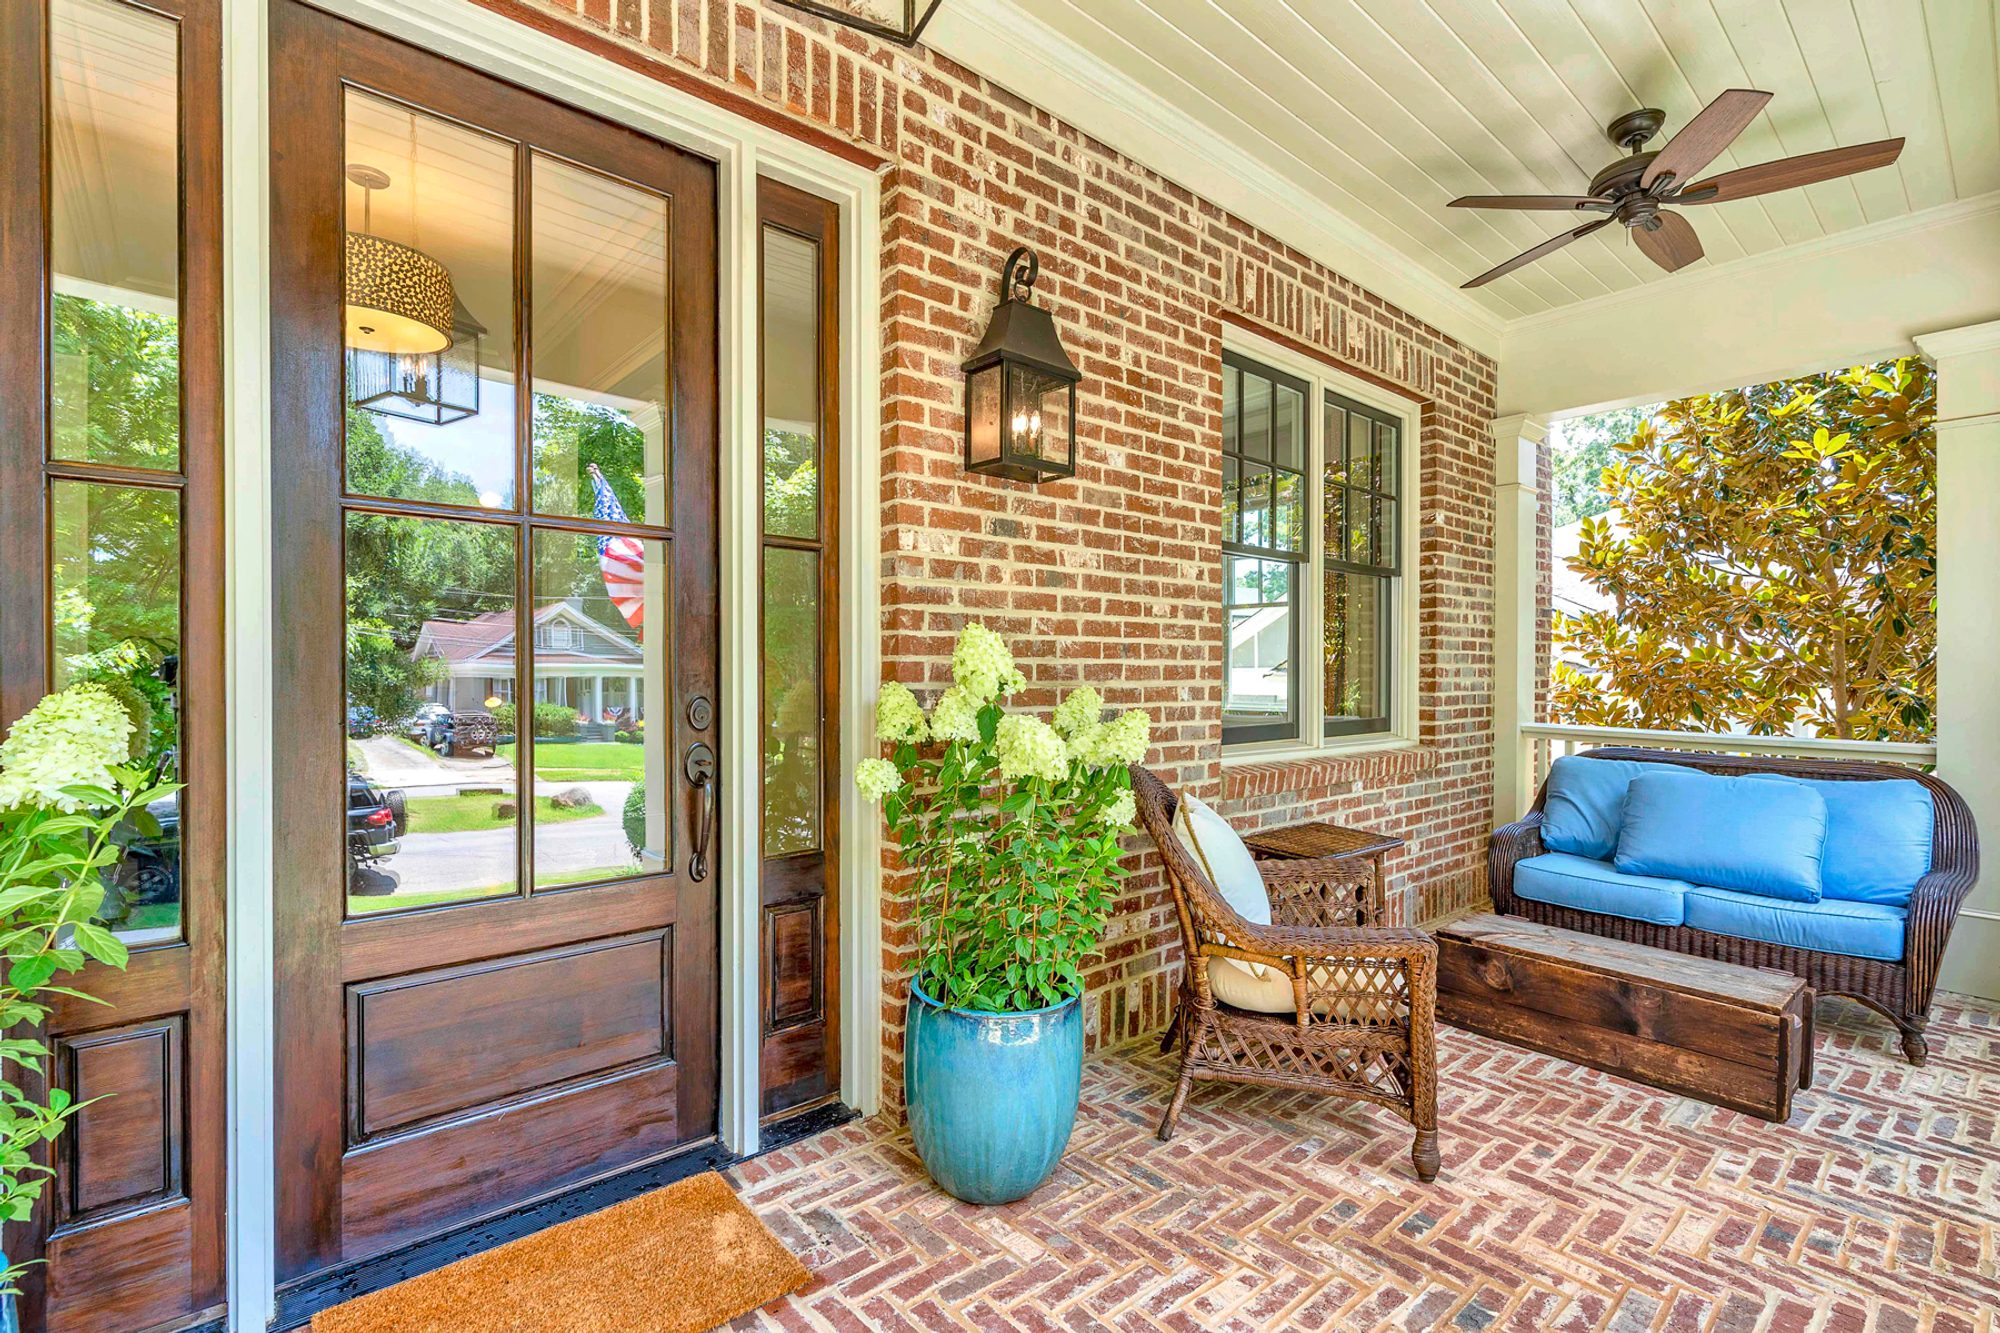 Red Brick Patio Ideas | DIY Paver Designs & Pictues on Red Paver Patio Ideas id=73384